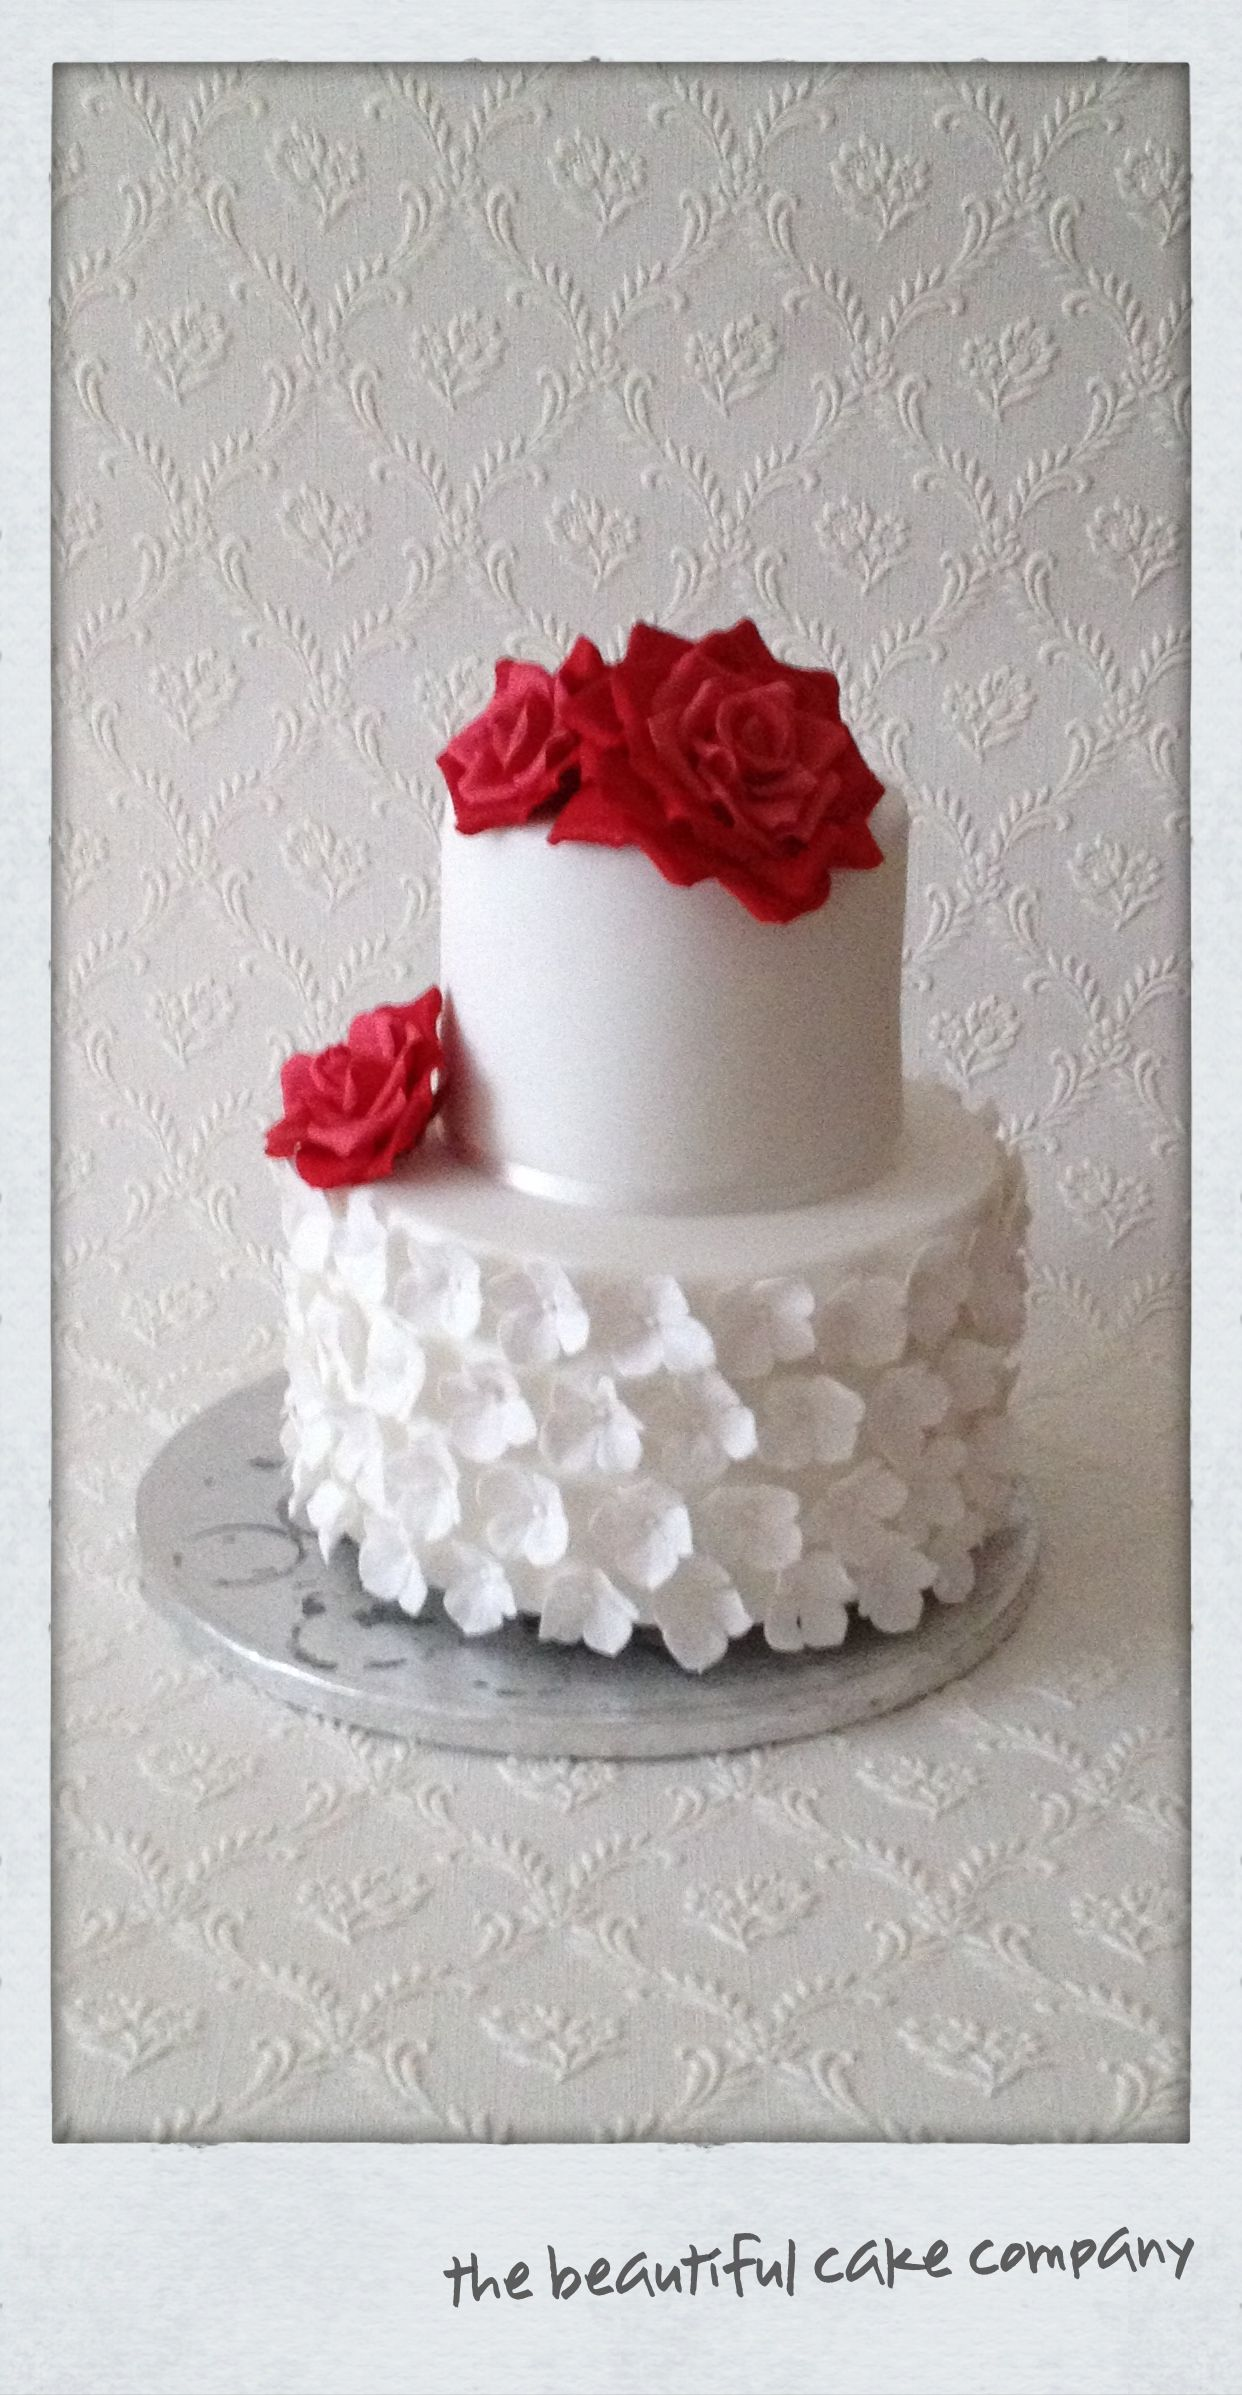 Rose & Hydrangea Wedding cake  http://www.facebook.com/pages/the-beautiful-cake-company/149909567474  www.thebeautifulcakecompany.weebly.com